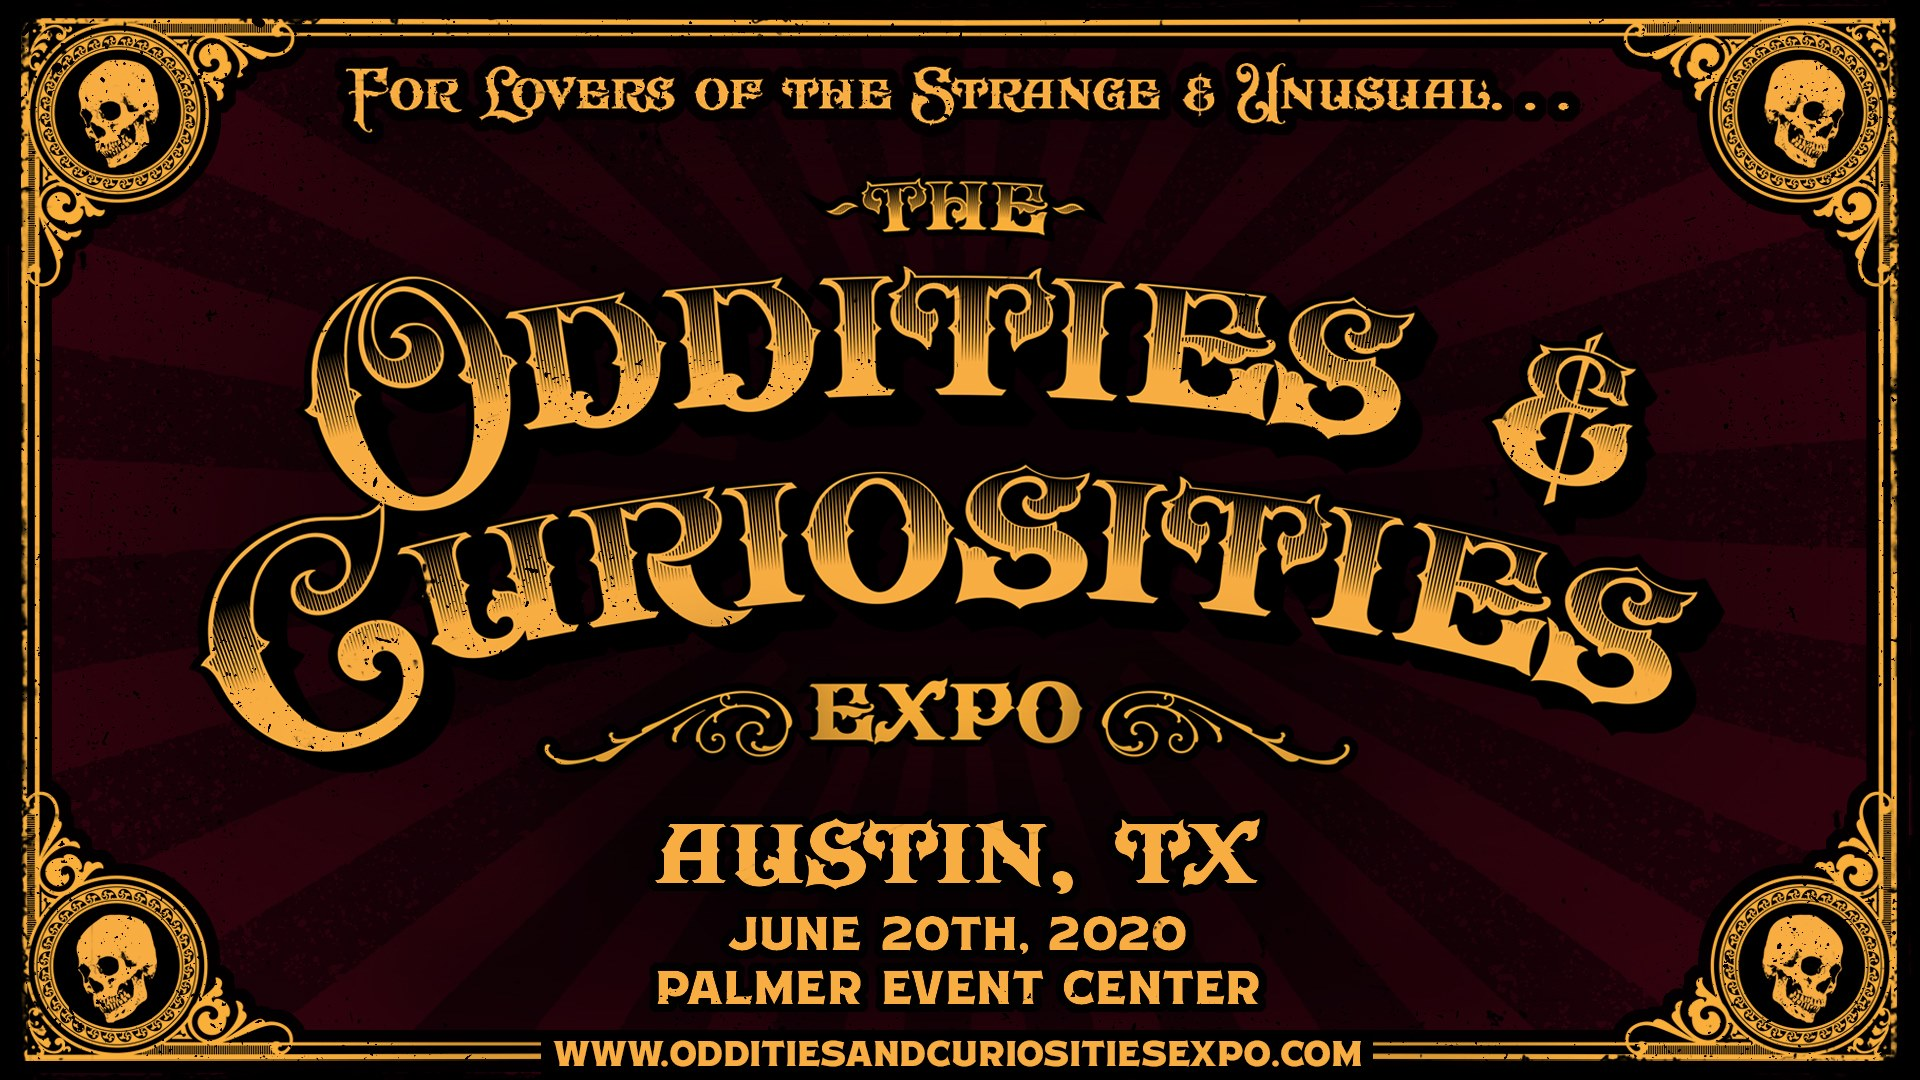 Austin Oddities & Curiosities Expo2020